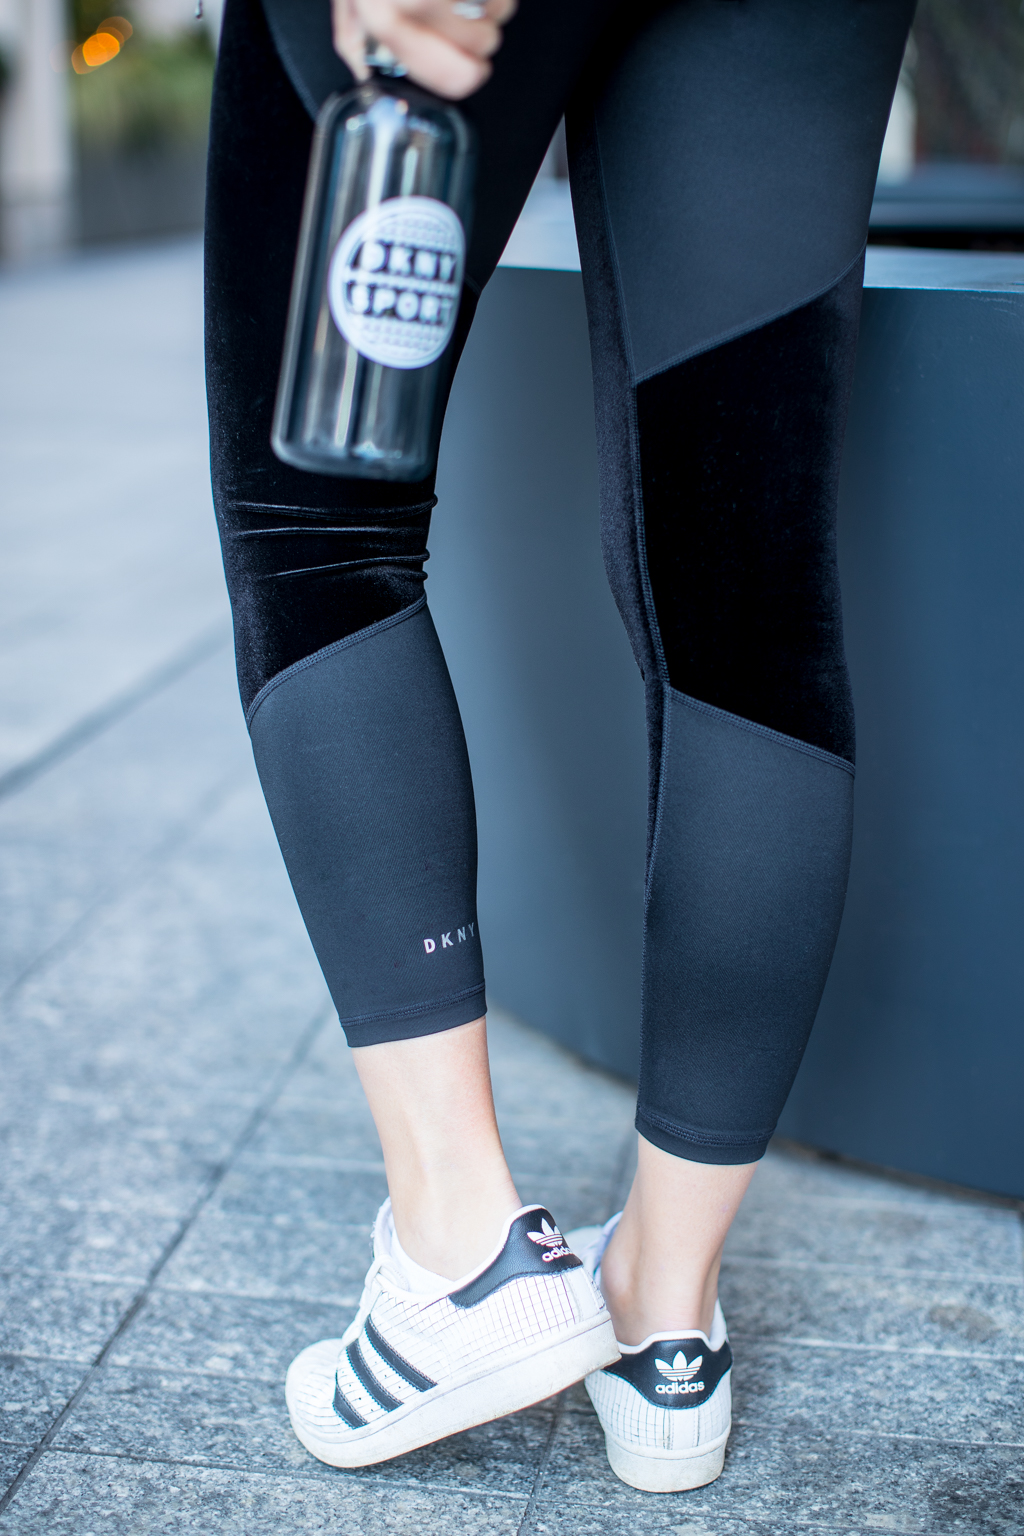 Fitness On Toast Faya Blog Girl Healthy Workout Fashion DKNY Sport London England West End Photoshoot OOTD Luxe Sport Lux Look-9